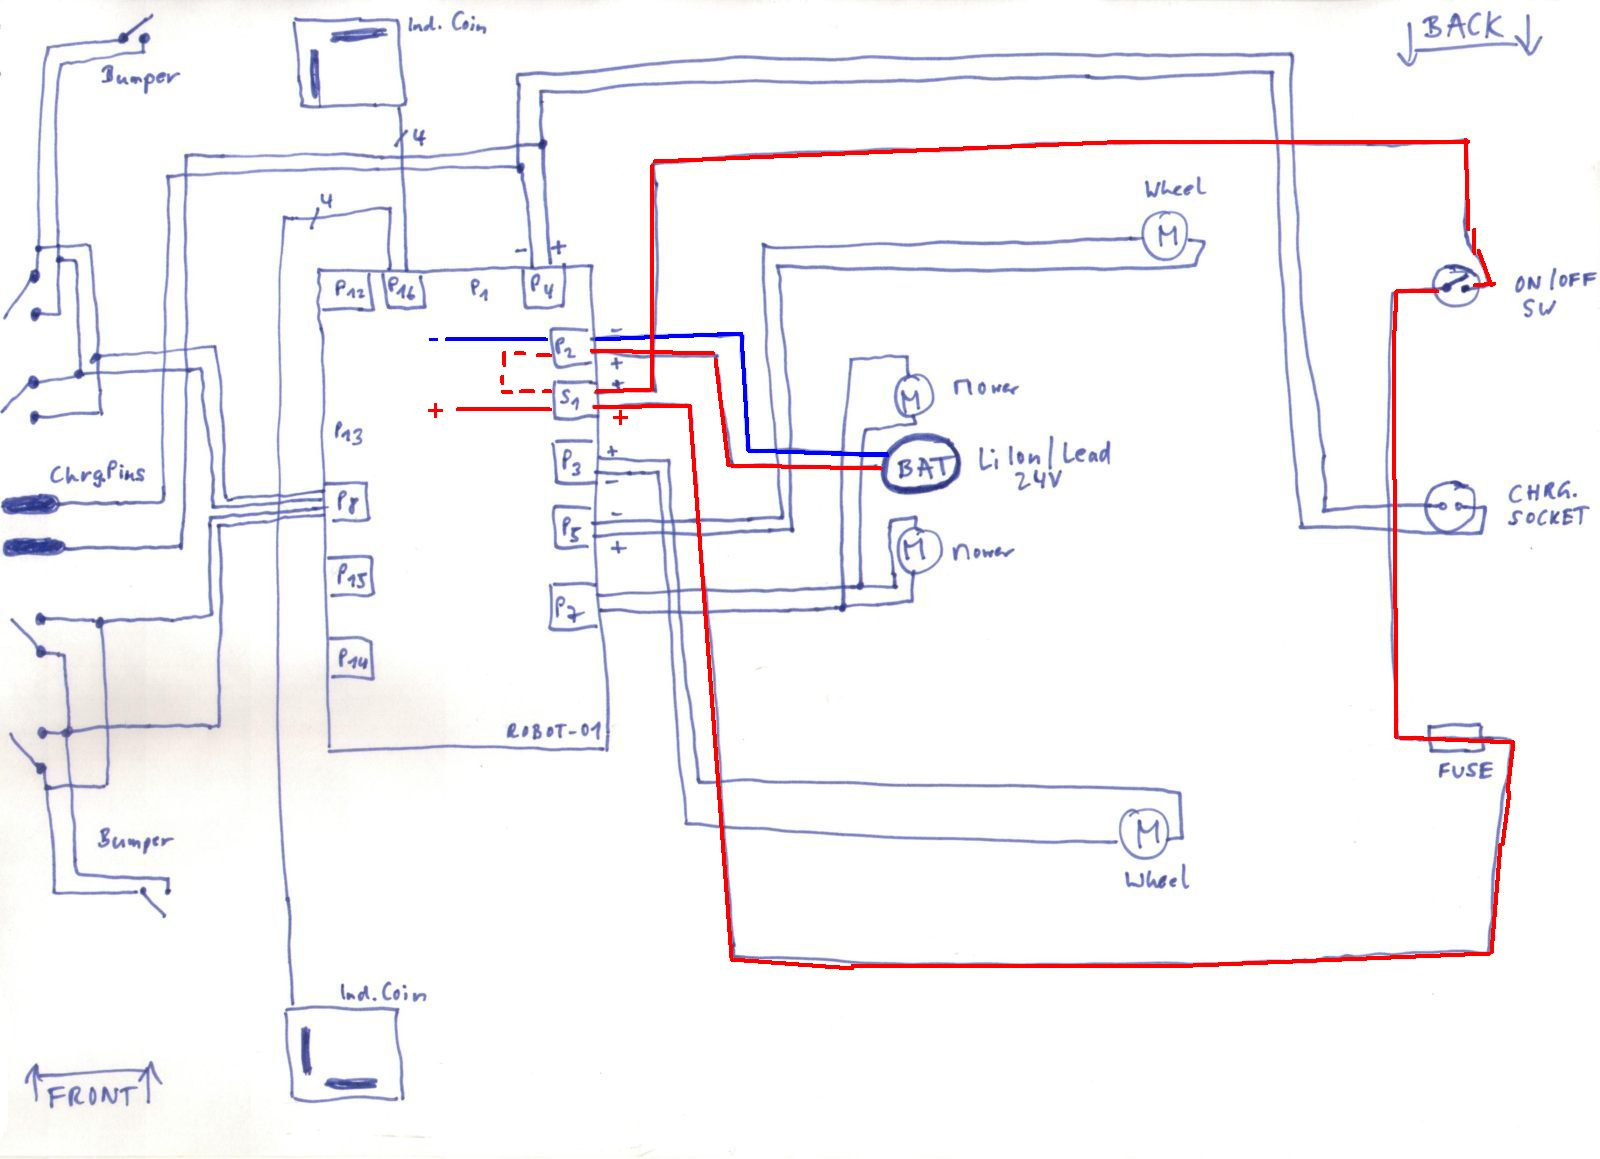 Wiring Harness For Jeep Cj5 Library Painless Diagram 1974 Wiringresize16002c1159 Diagrams 11002459